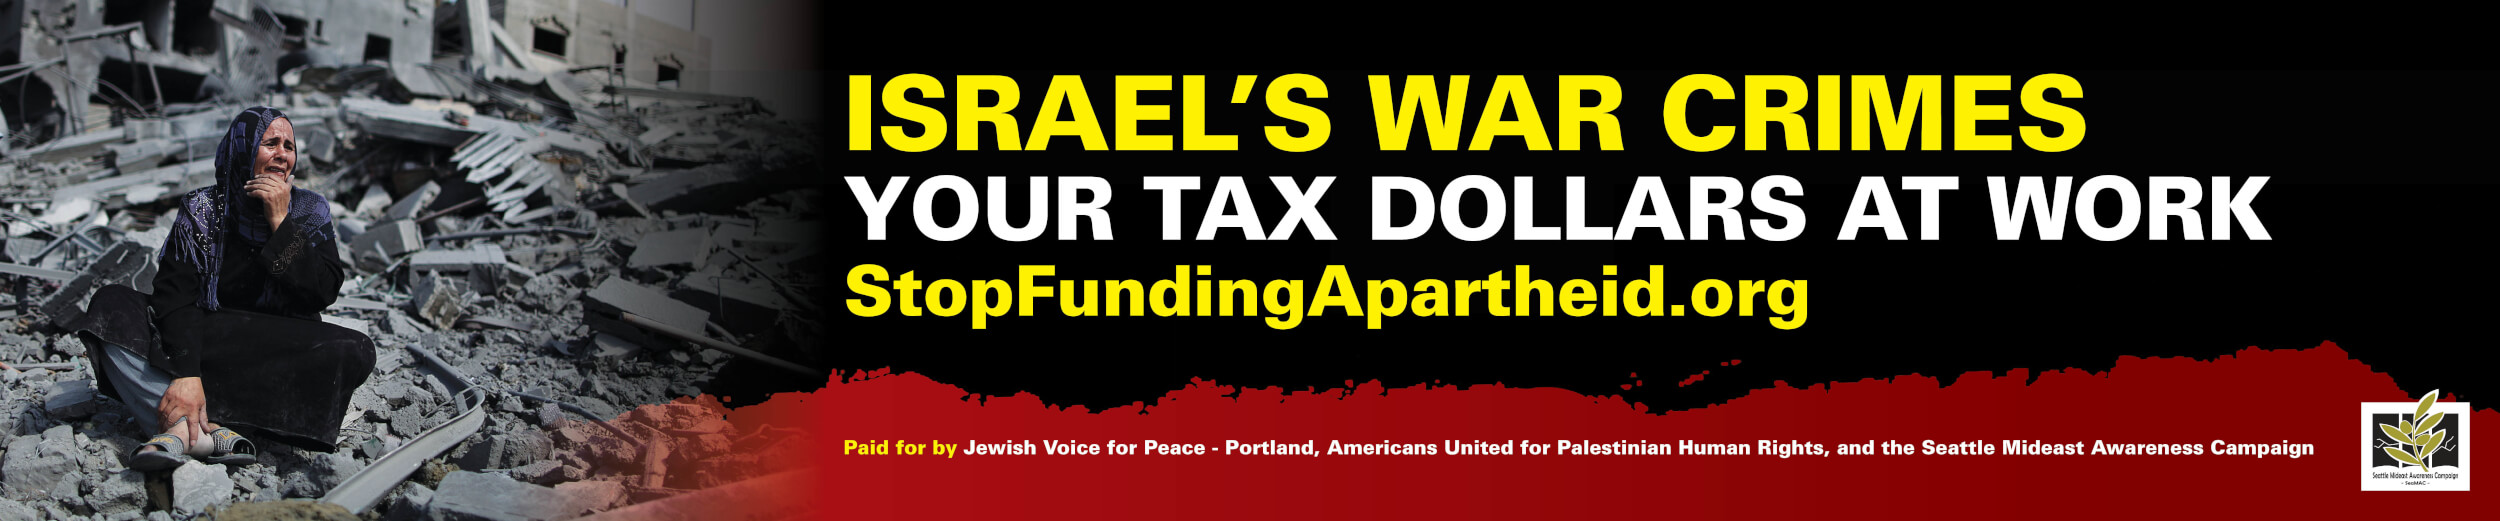 Bus ads hitting US aid for Israeli 'war crimes' roll in Portland